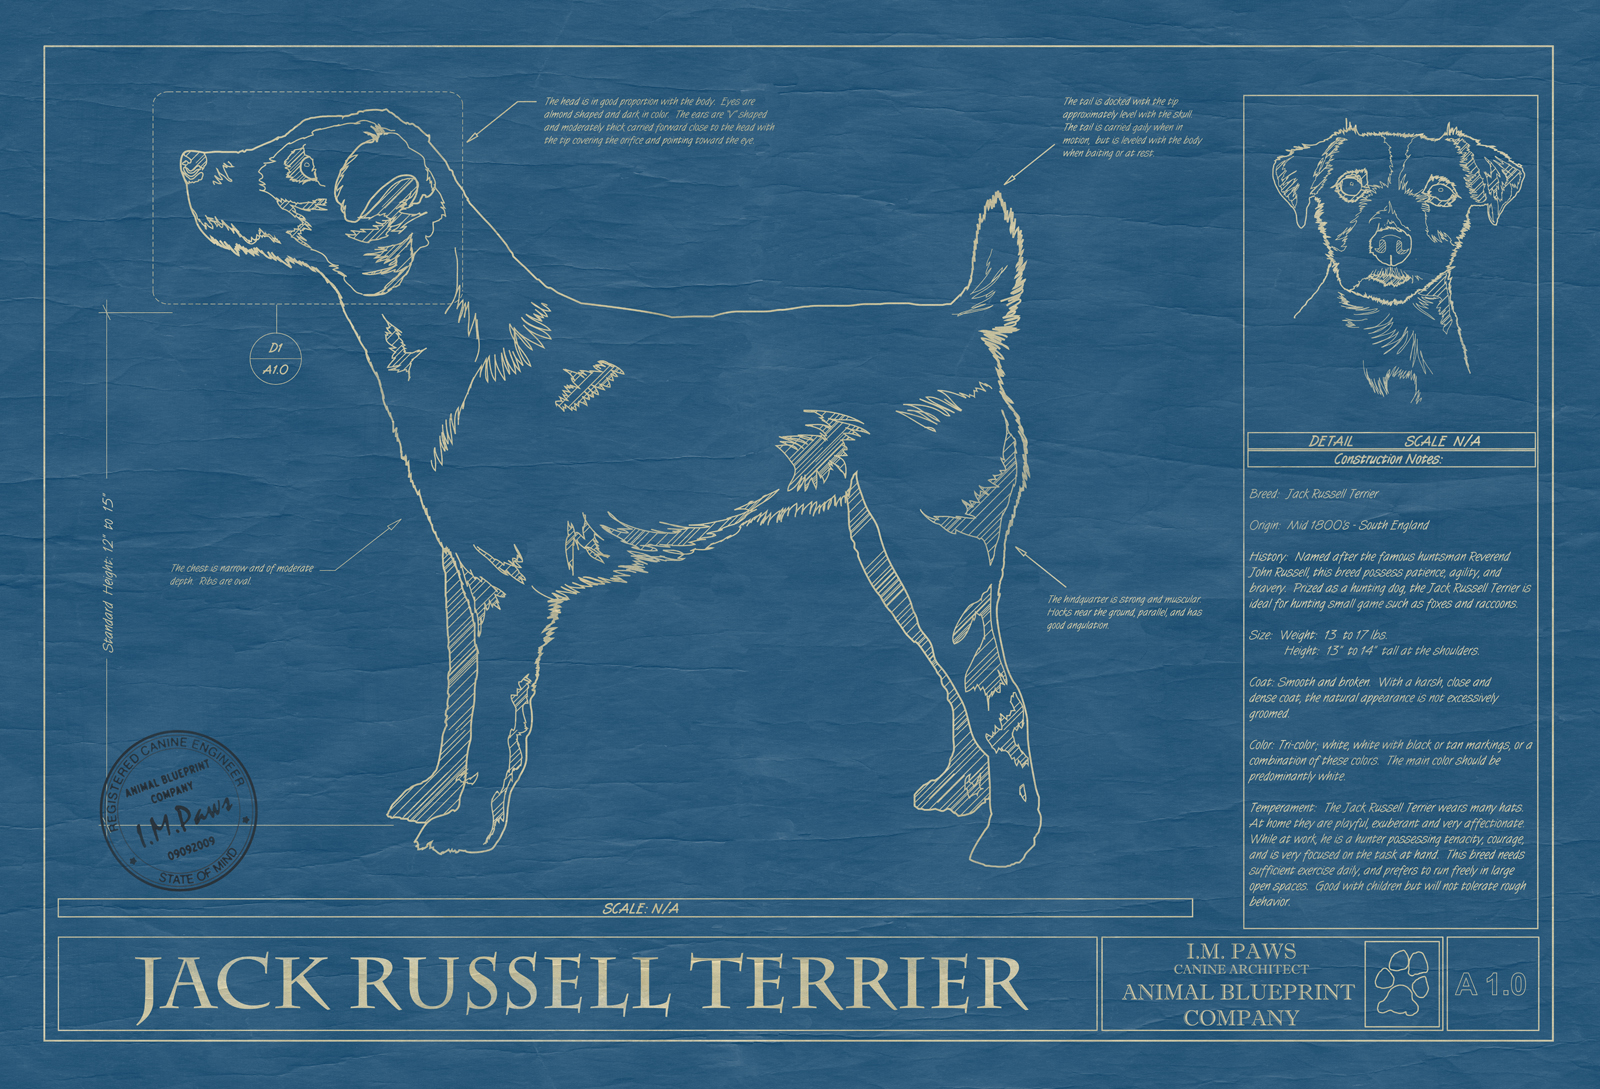 Jack russell terrier animal blueprint company jack russell terrier dog blueprint malvernweather Gallery